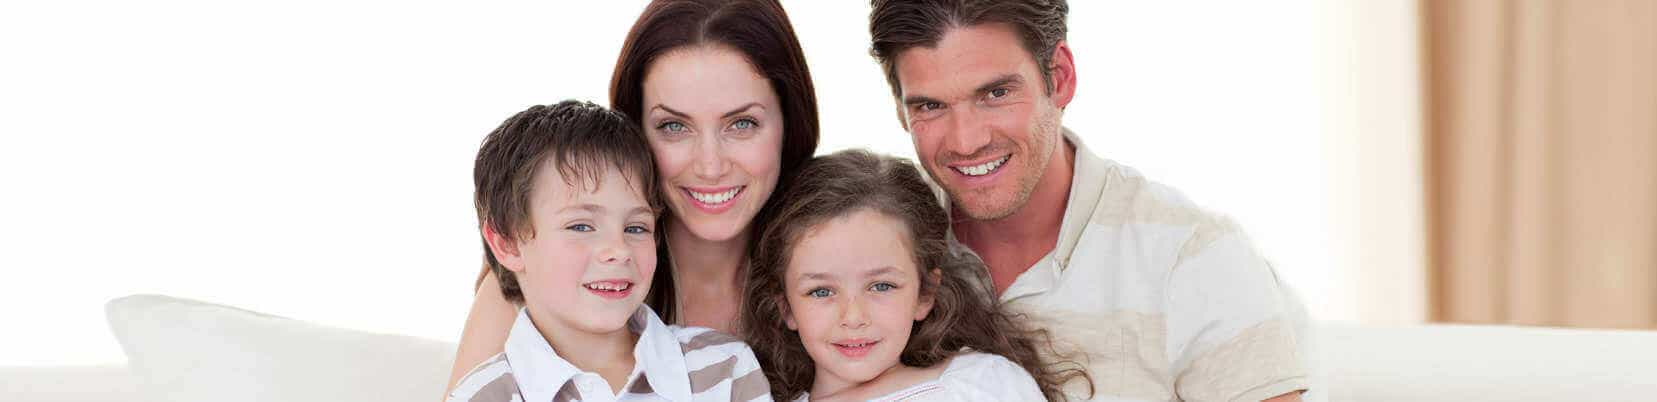 Paris Family Dental - New Patients